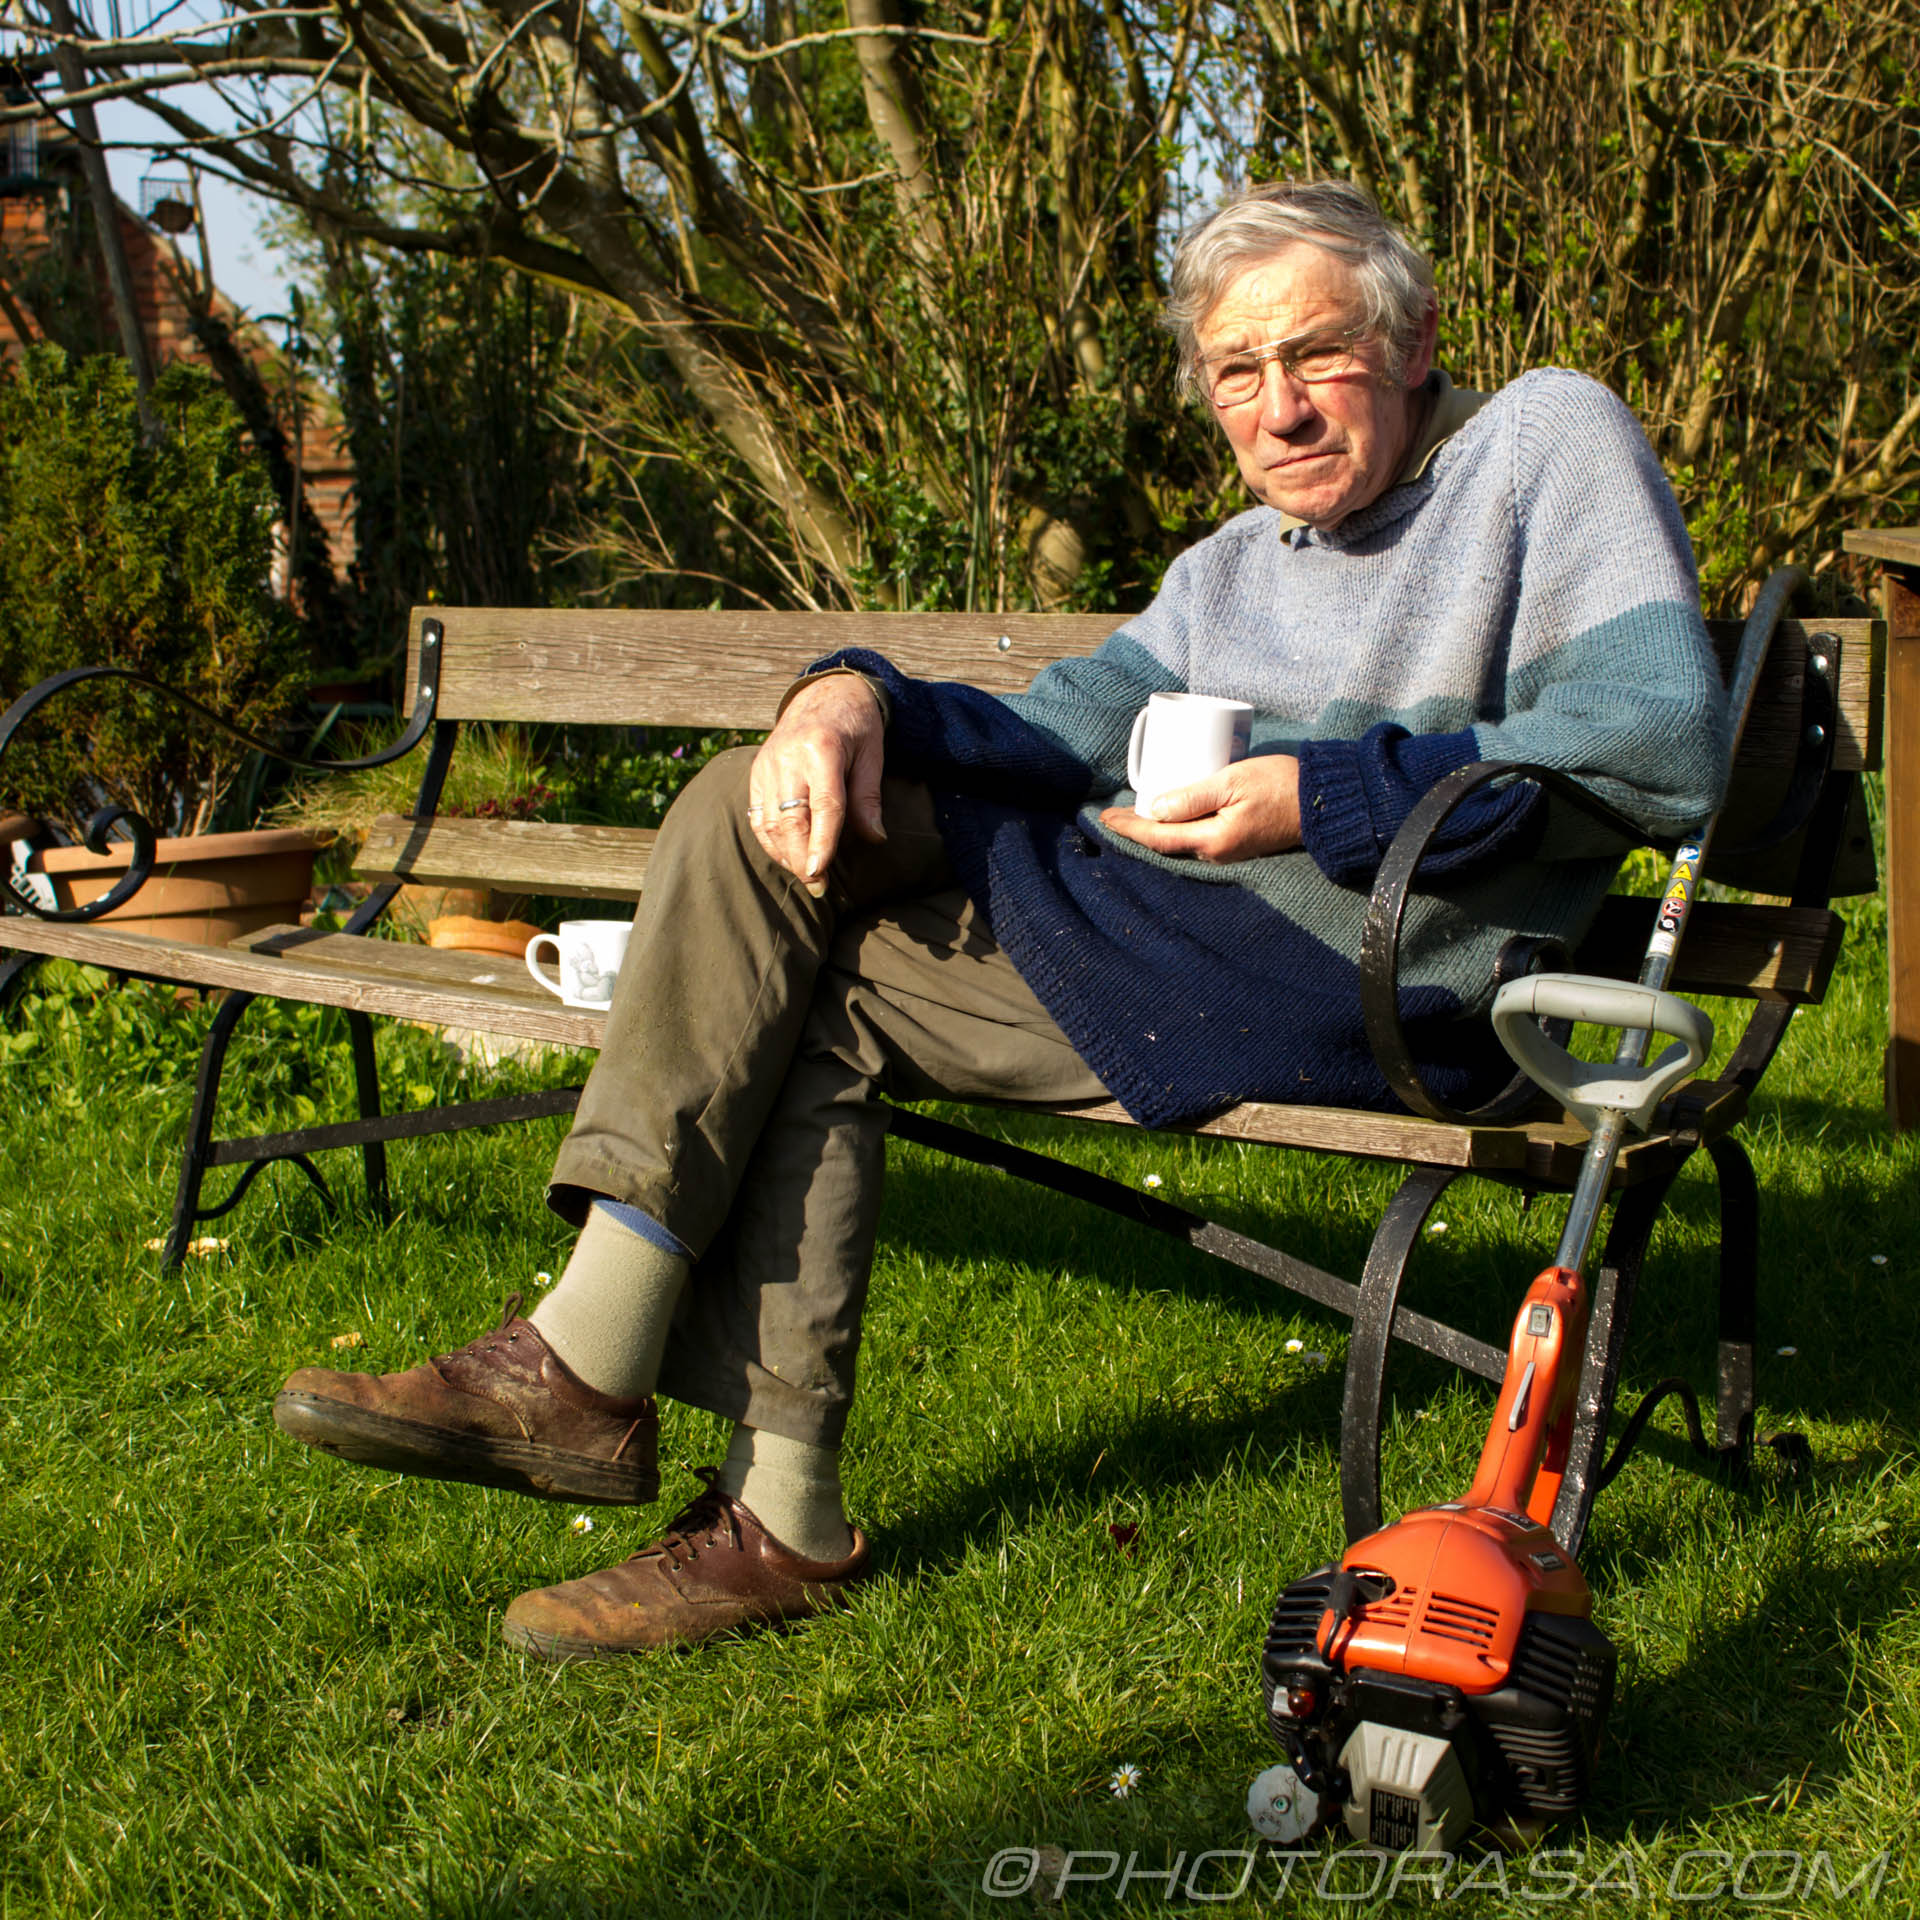 http://photorasa.com/saints-church-staplehurst-kent/chrurch-neighbour-with-a-cuppa-and-a-strimmer/